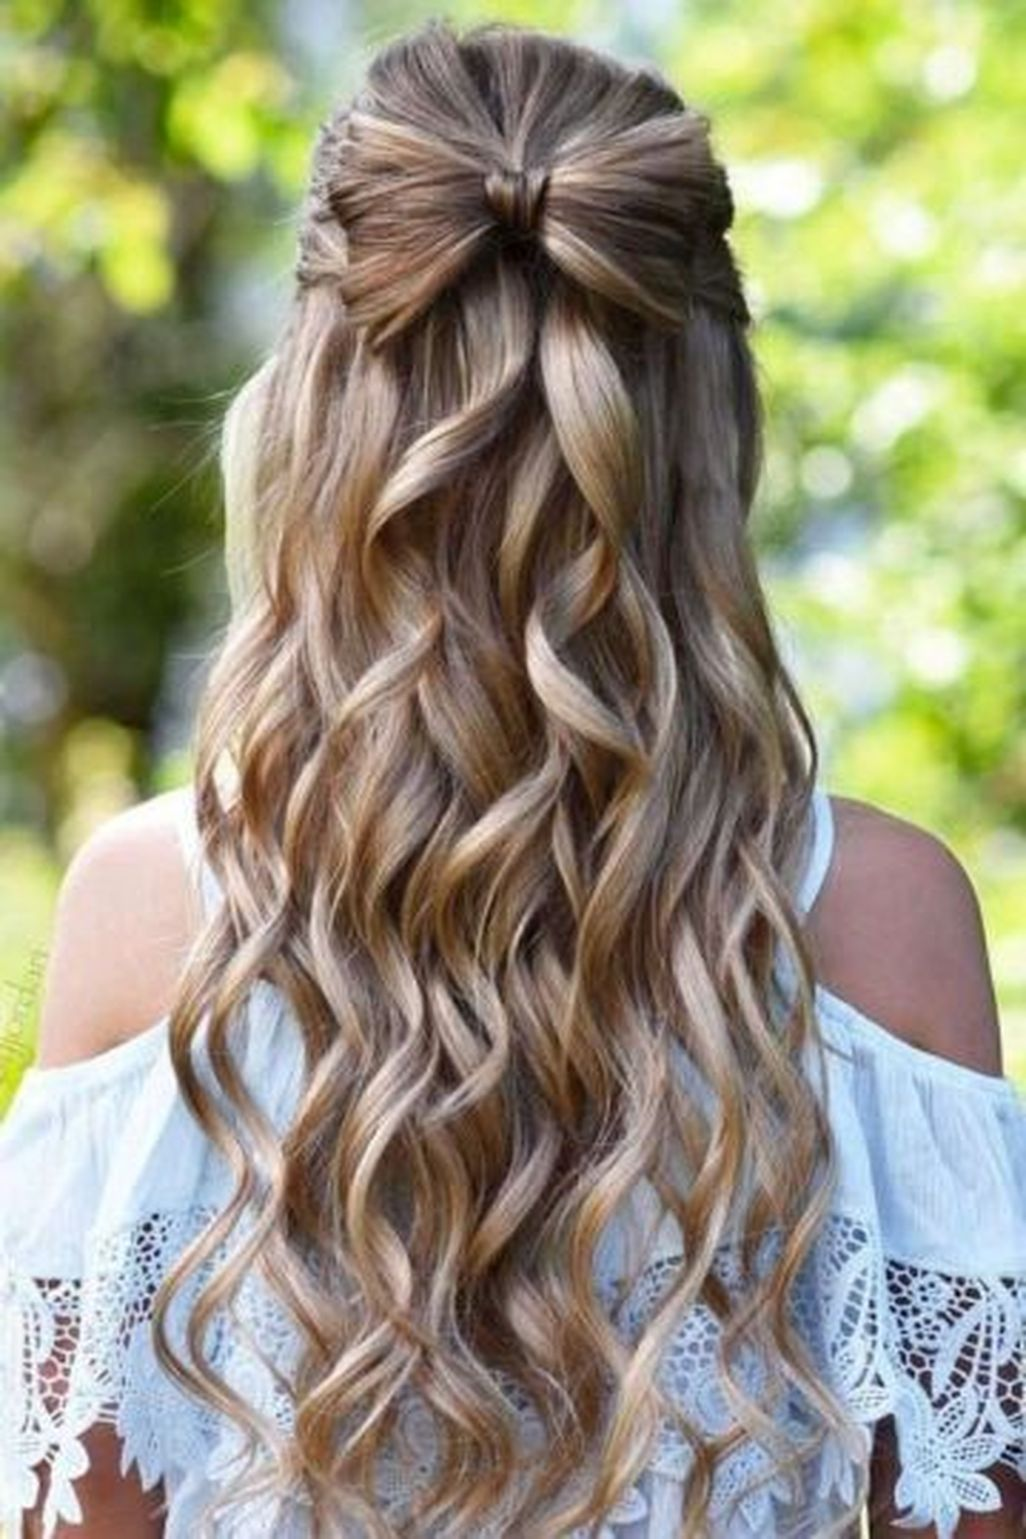 Pin by amandapandaclaire on hair styles for occasions in